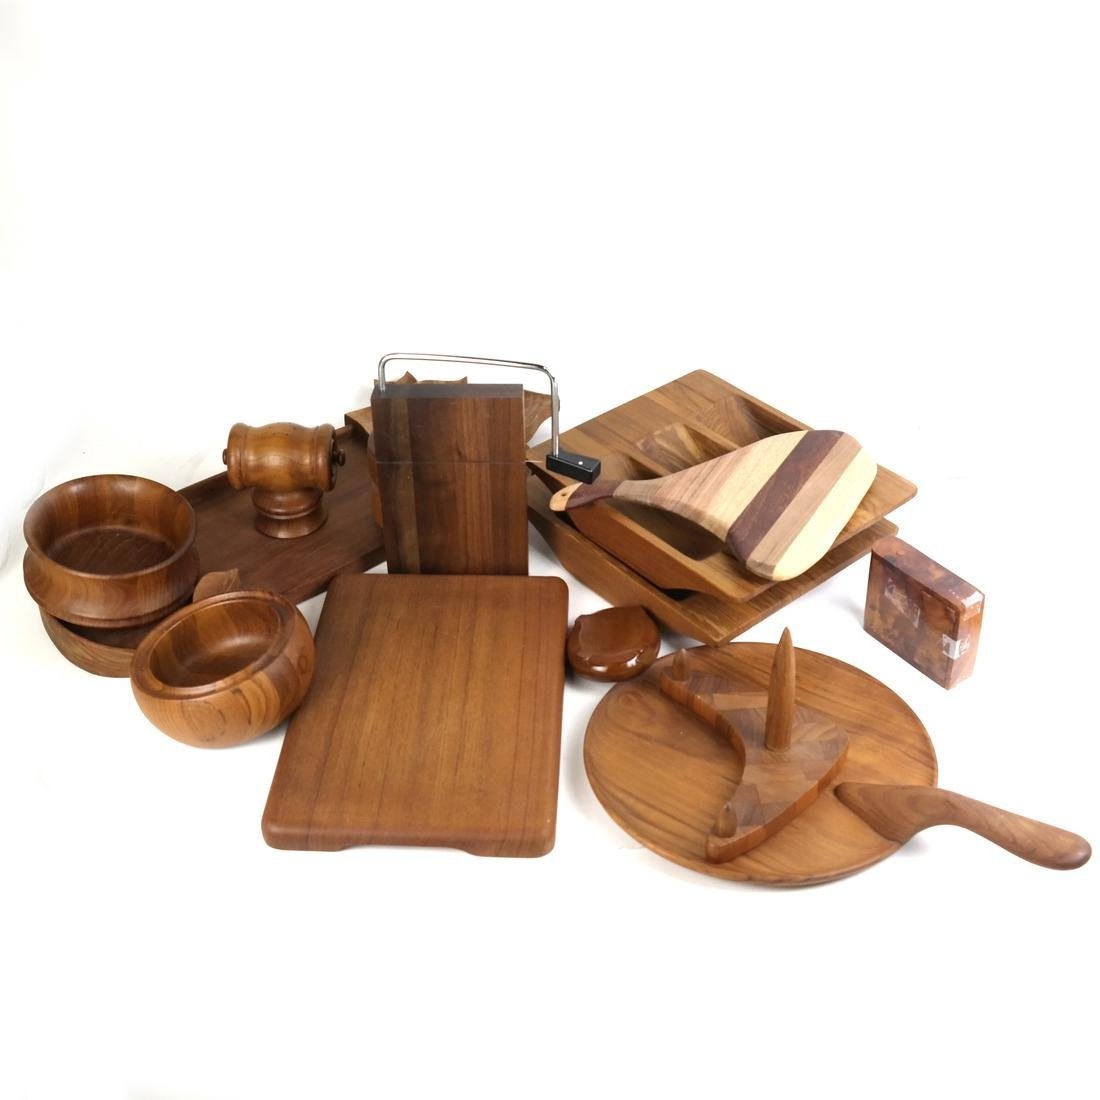 Mostly Danish Wood Serving Pieces